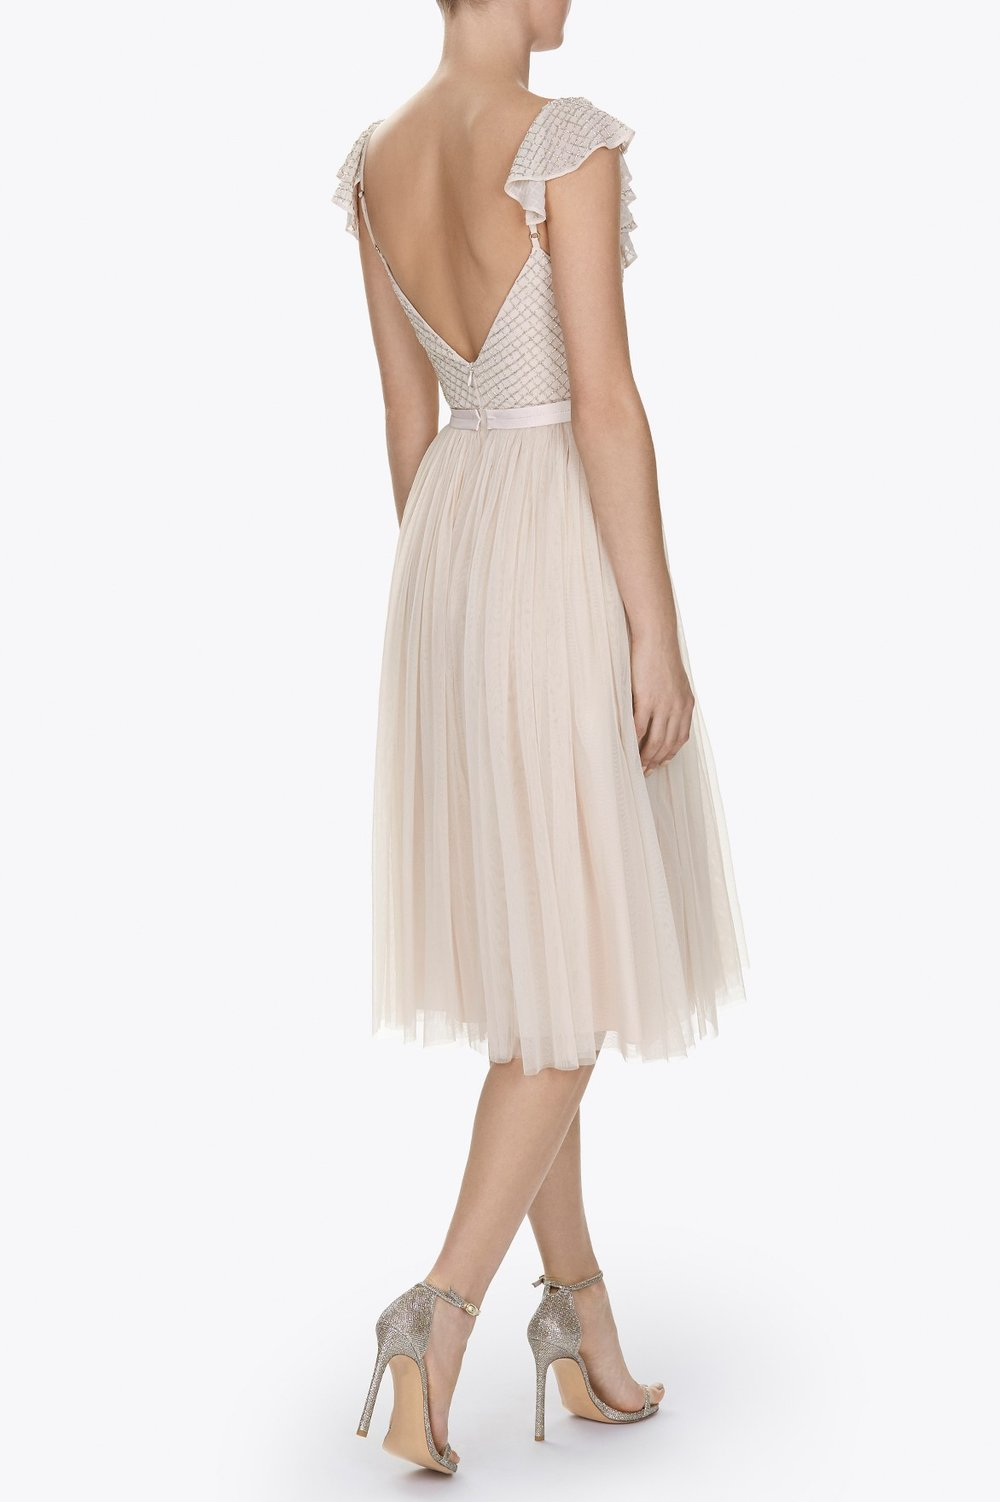 swan_dress_petalpink_3.jpg